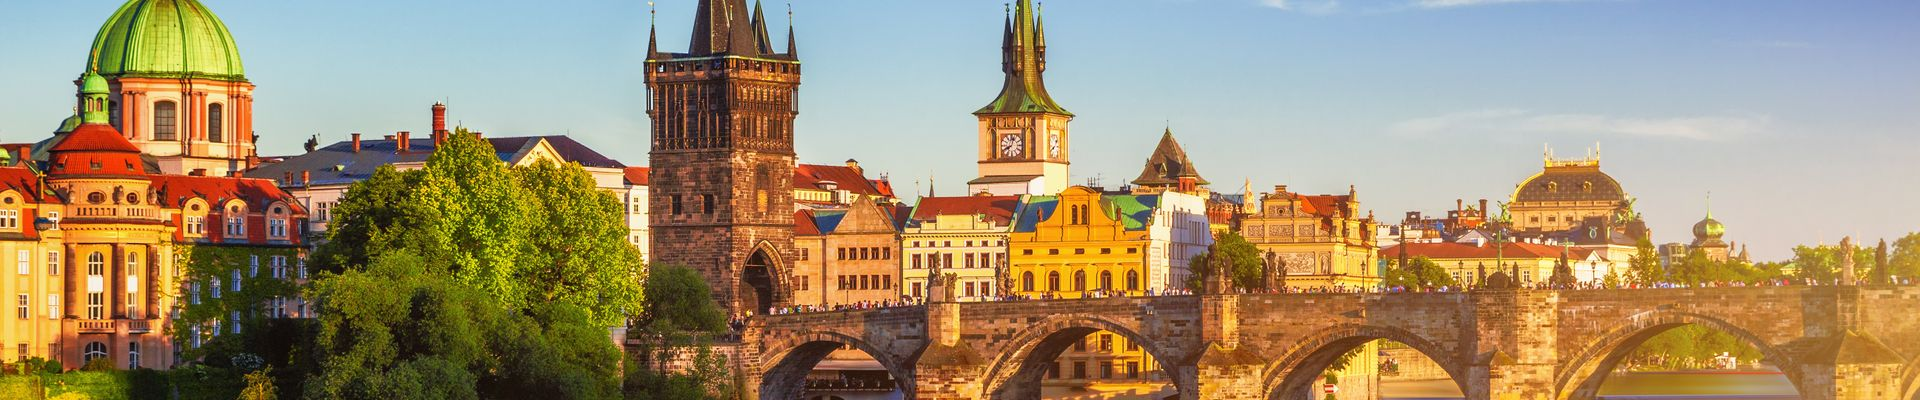 Wellness Wochenende in Prag